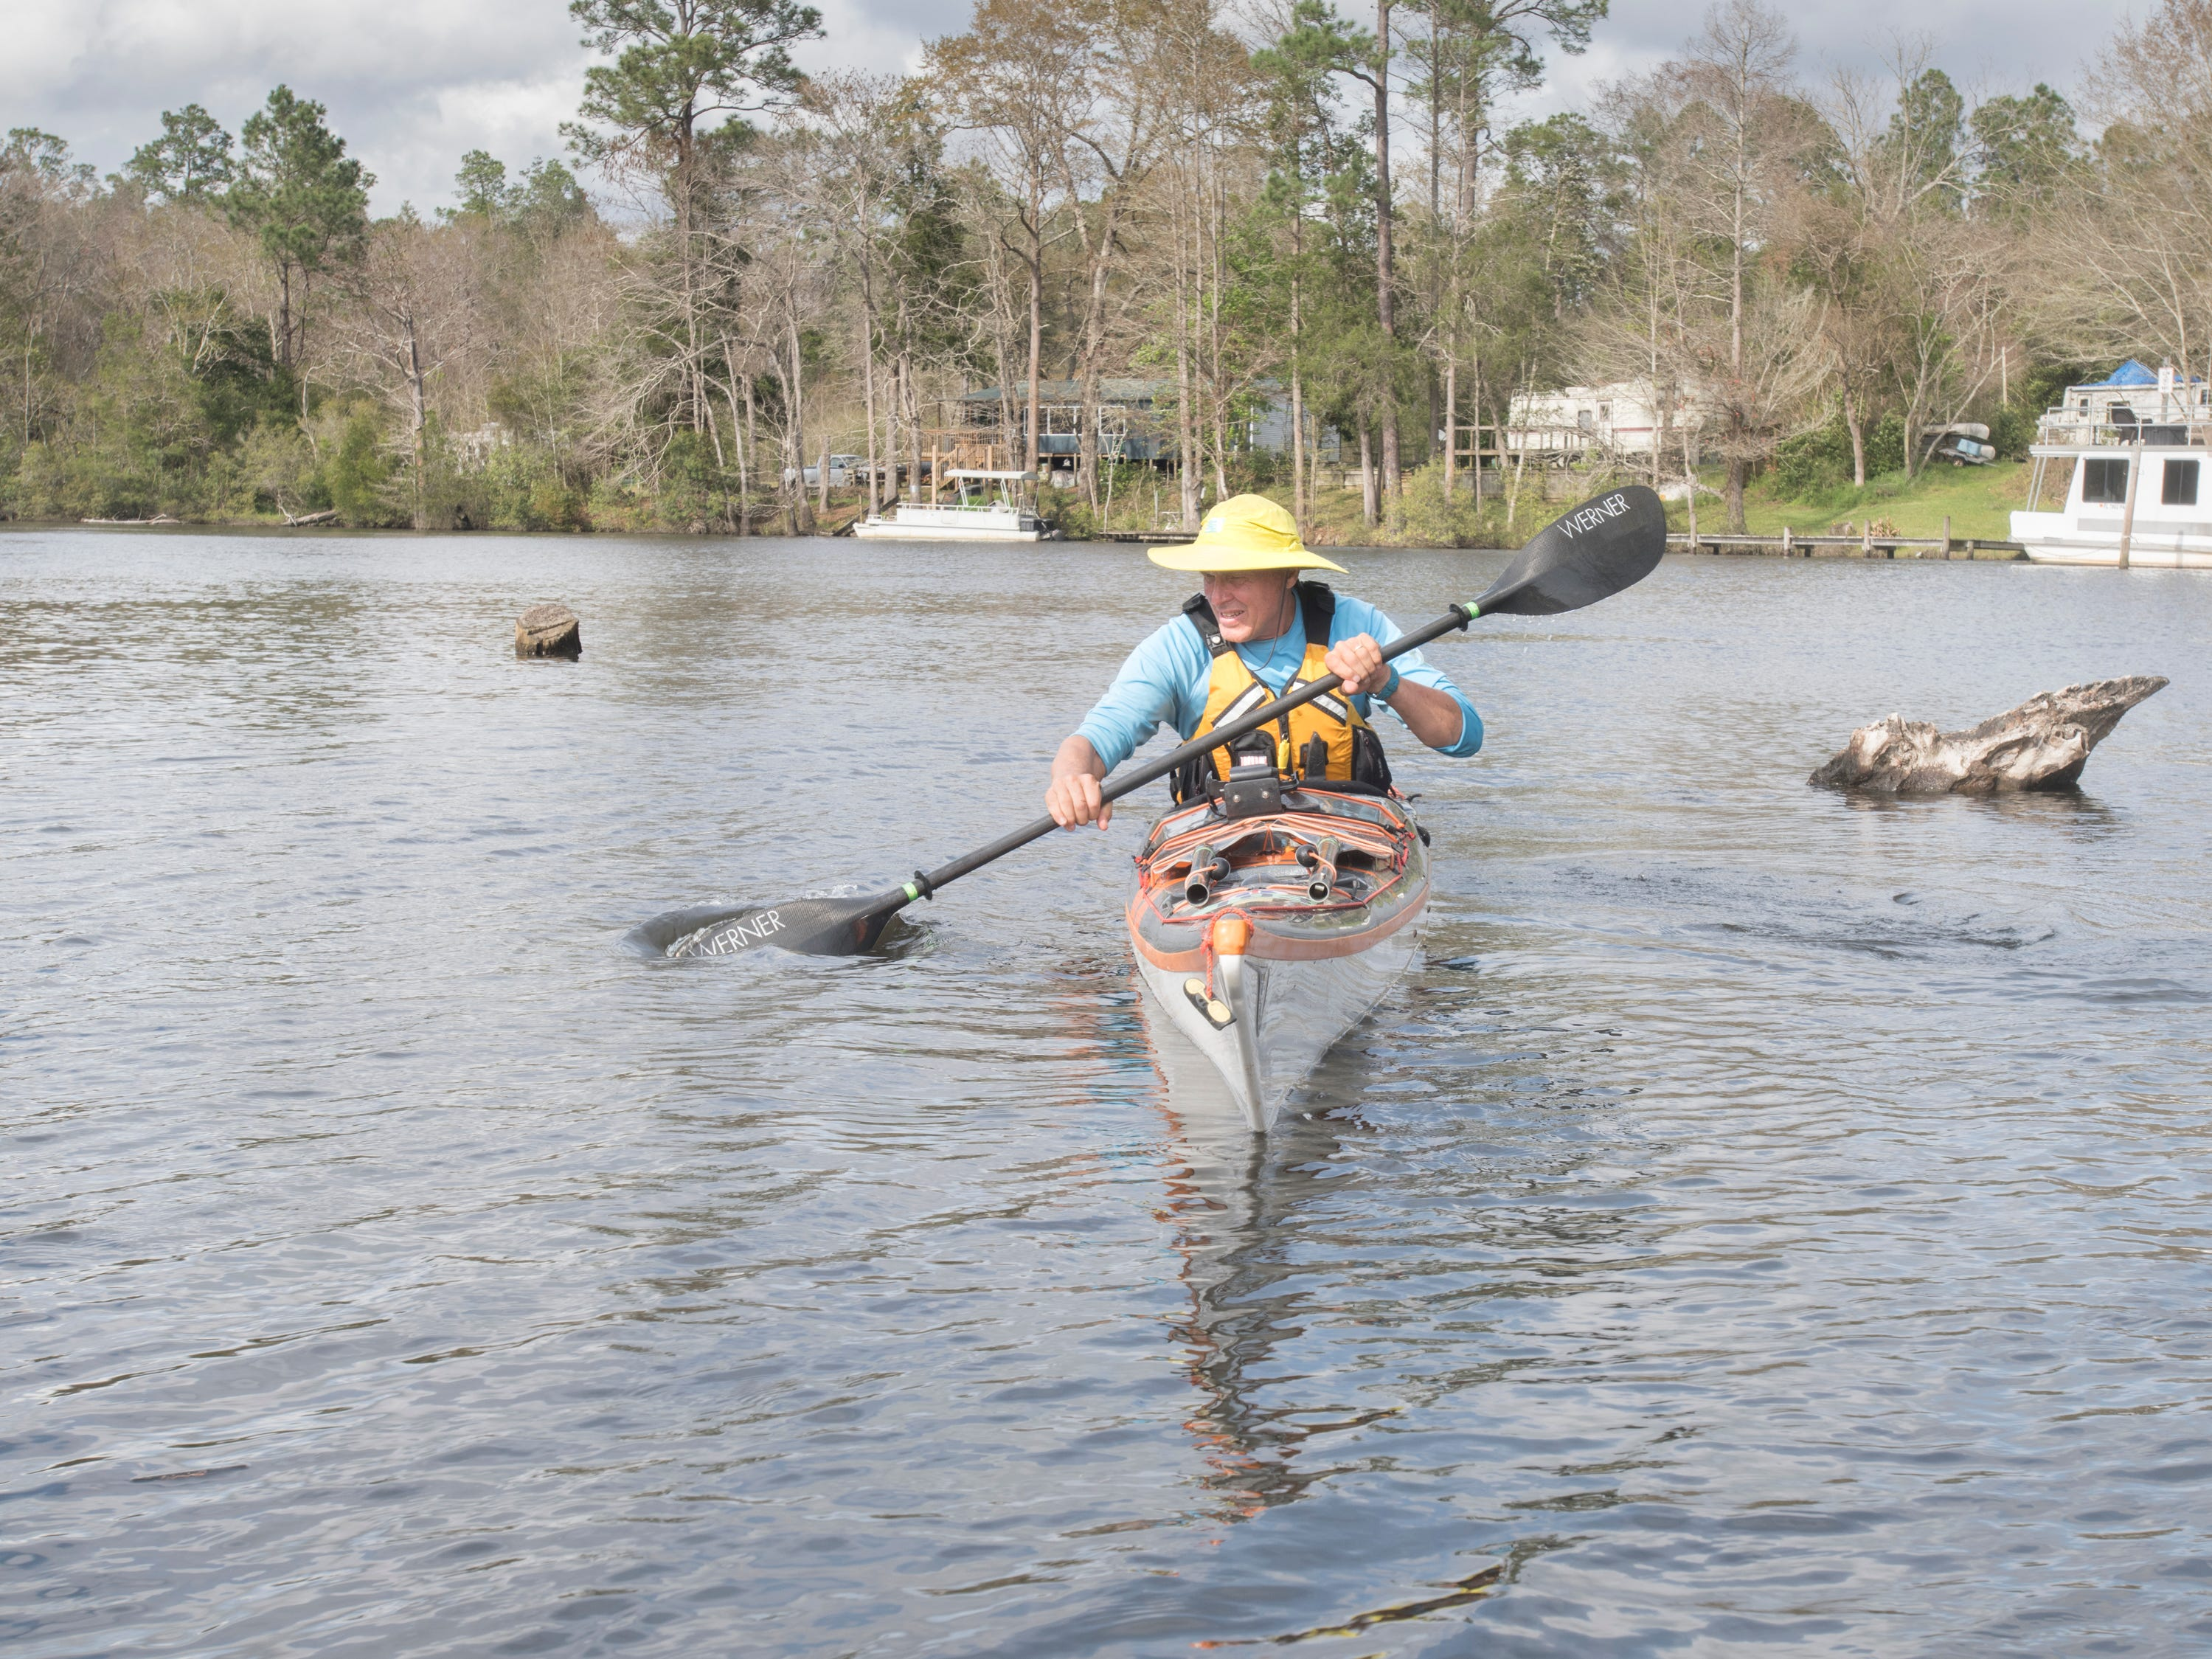 Paul Gelderblom, of Charlevoix, Michigan, kayaks on the Perdido River near the Wilson Robertson Boat Ramp in Pensacola on Monday, March 11, 2019.  Paddle Florida is hosting 60 paddlers on a 5-day, 60-mile journey from Otto Hill to Perdido Pass.  Florida is currently working with Alabama to establish a paddling trail on the Perdido River.